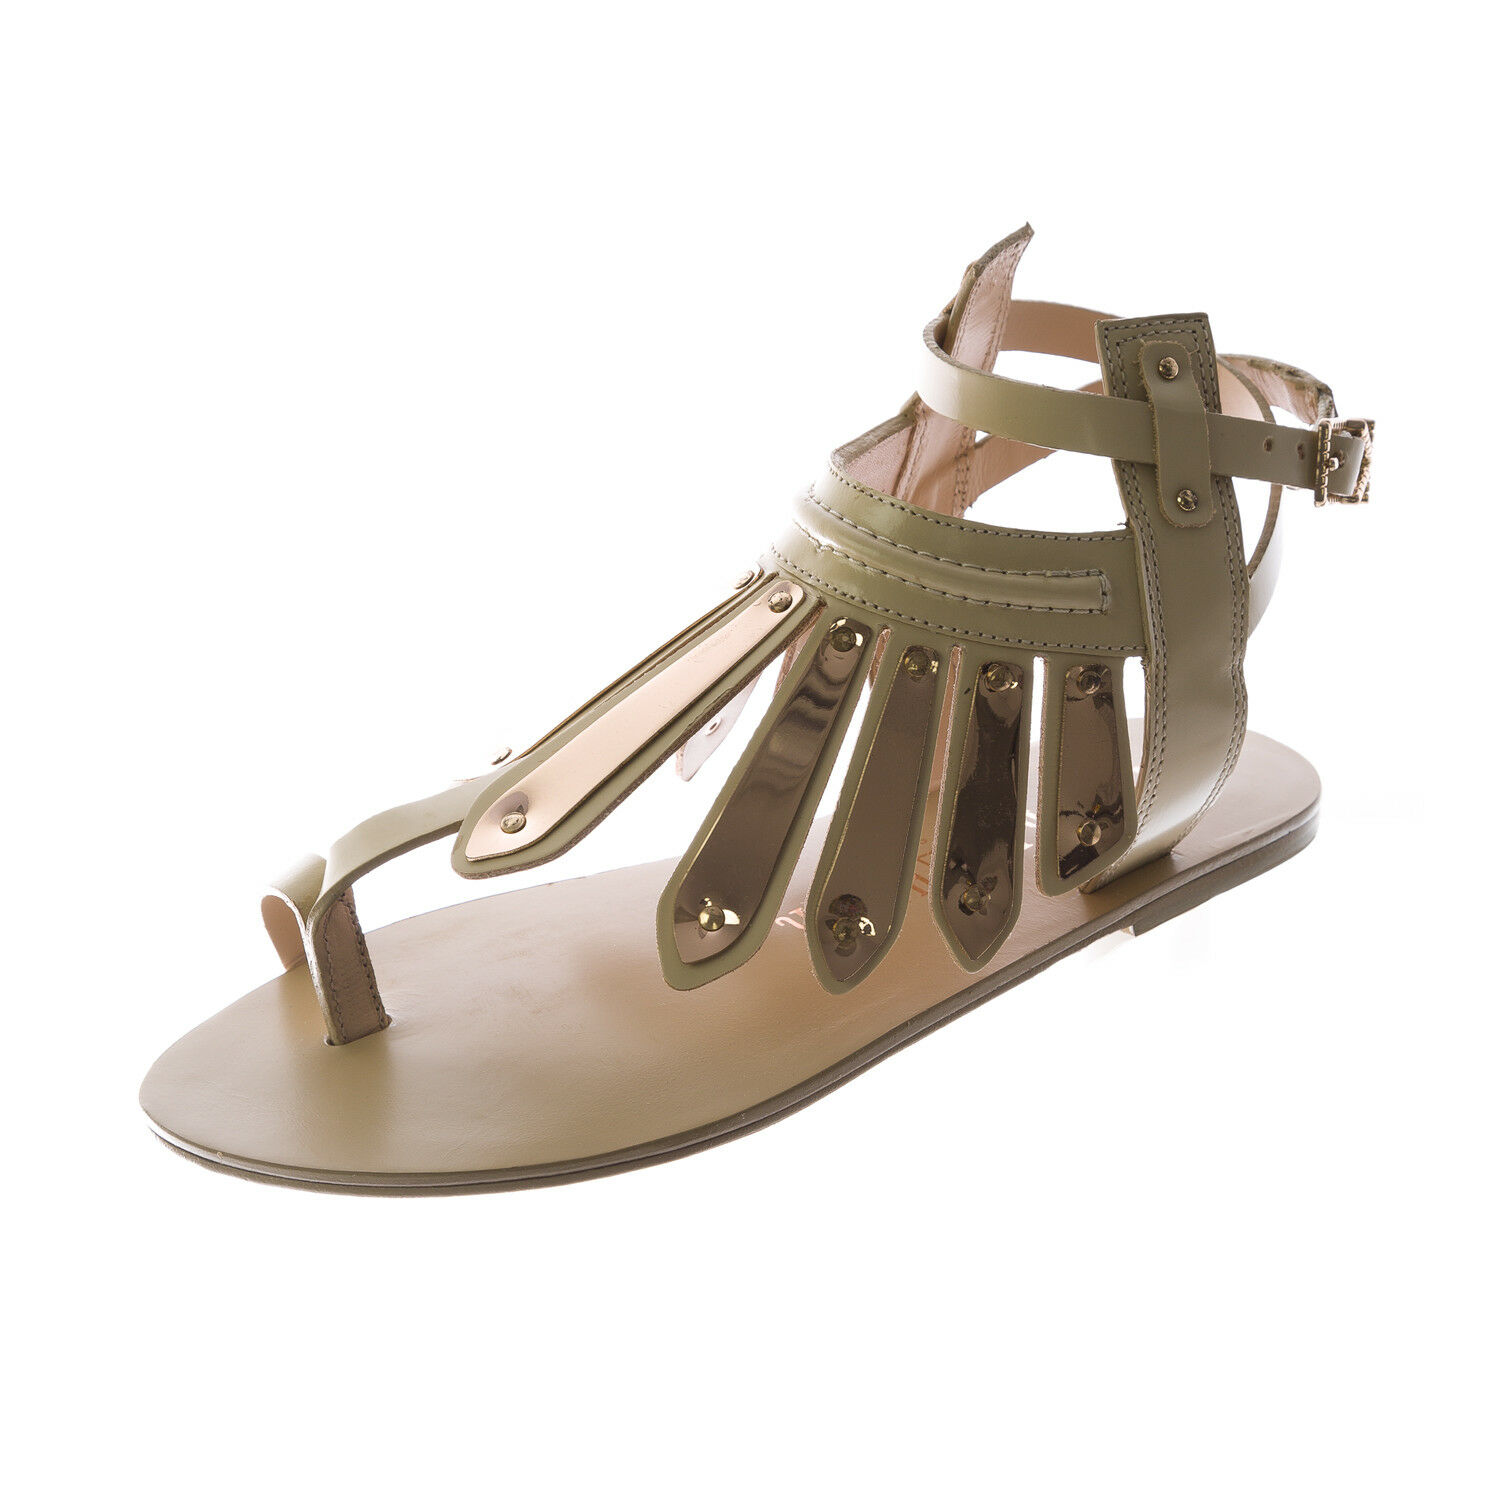 IVY KIRZHNER Women's Natural Woven Leather Soleil Thong Sandals NEW